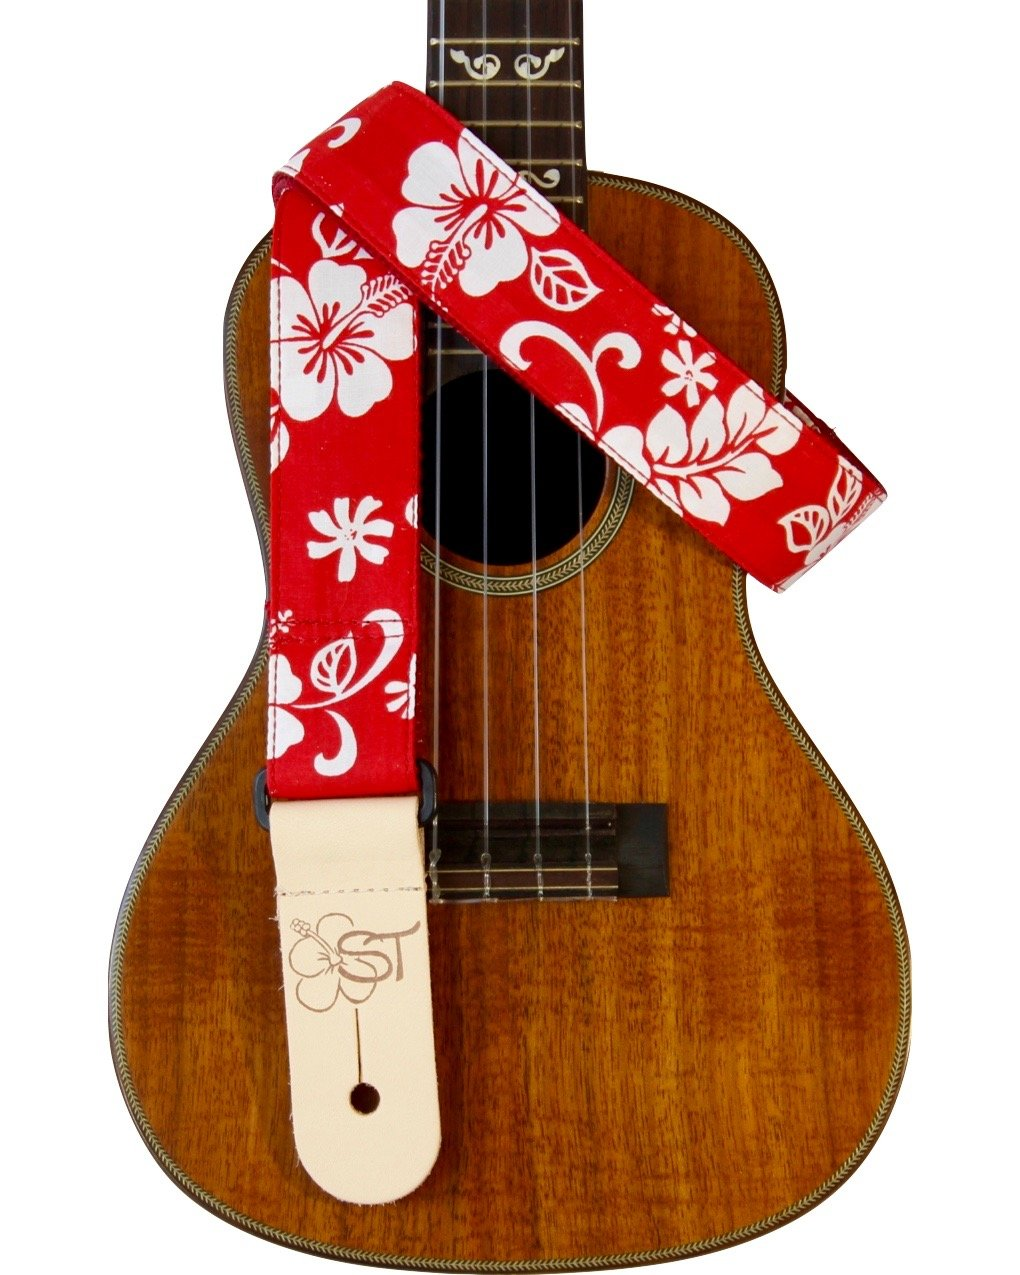 Sherrin's Threads 1.5 Hawaiian Print Ukulele Strap - Red Hibiscus